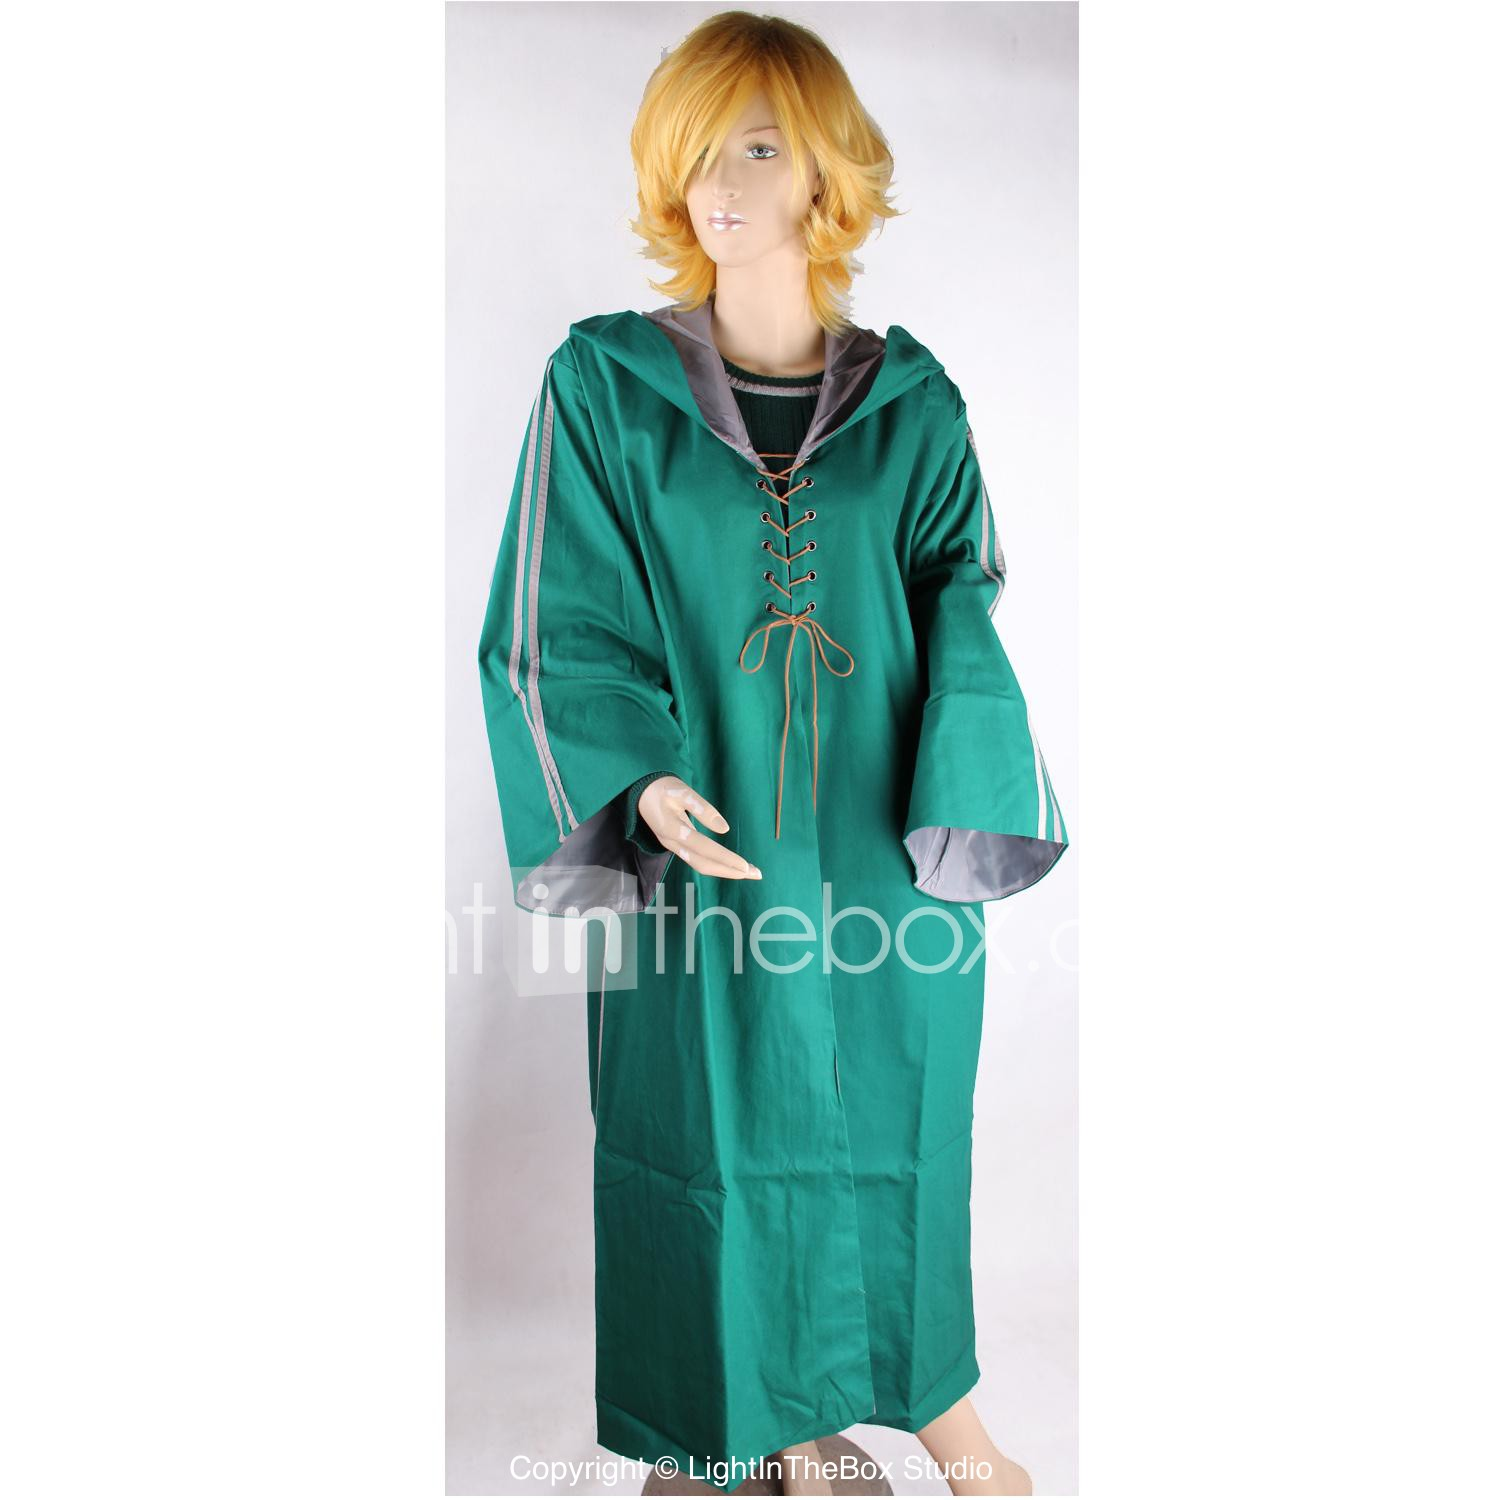 Magic Boy Quidditch Cosplay Costume Slytherin House Robe 2246835 2020 90 19